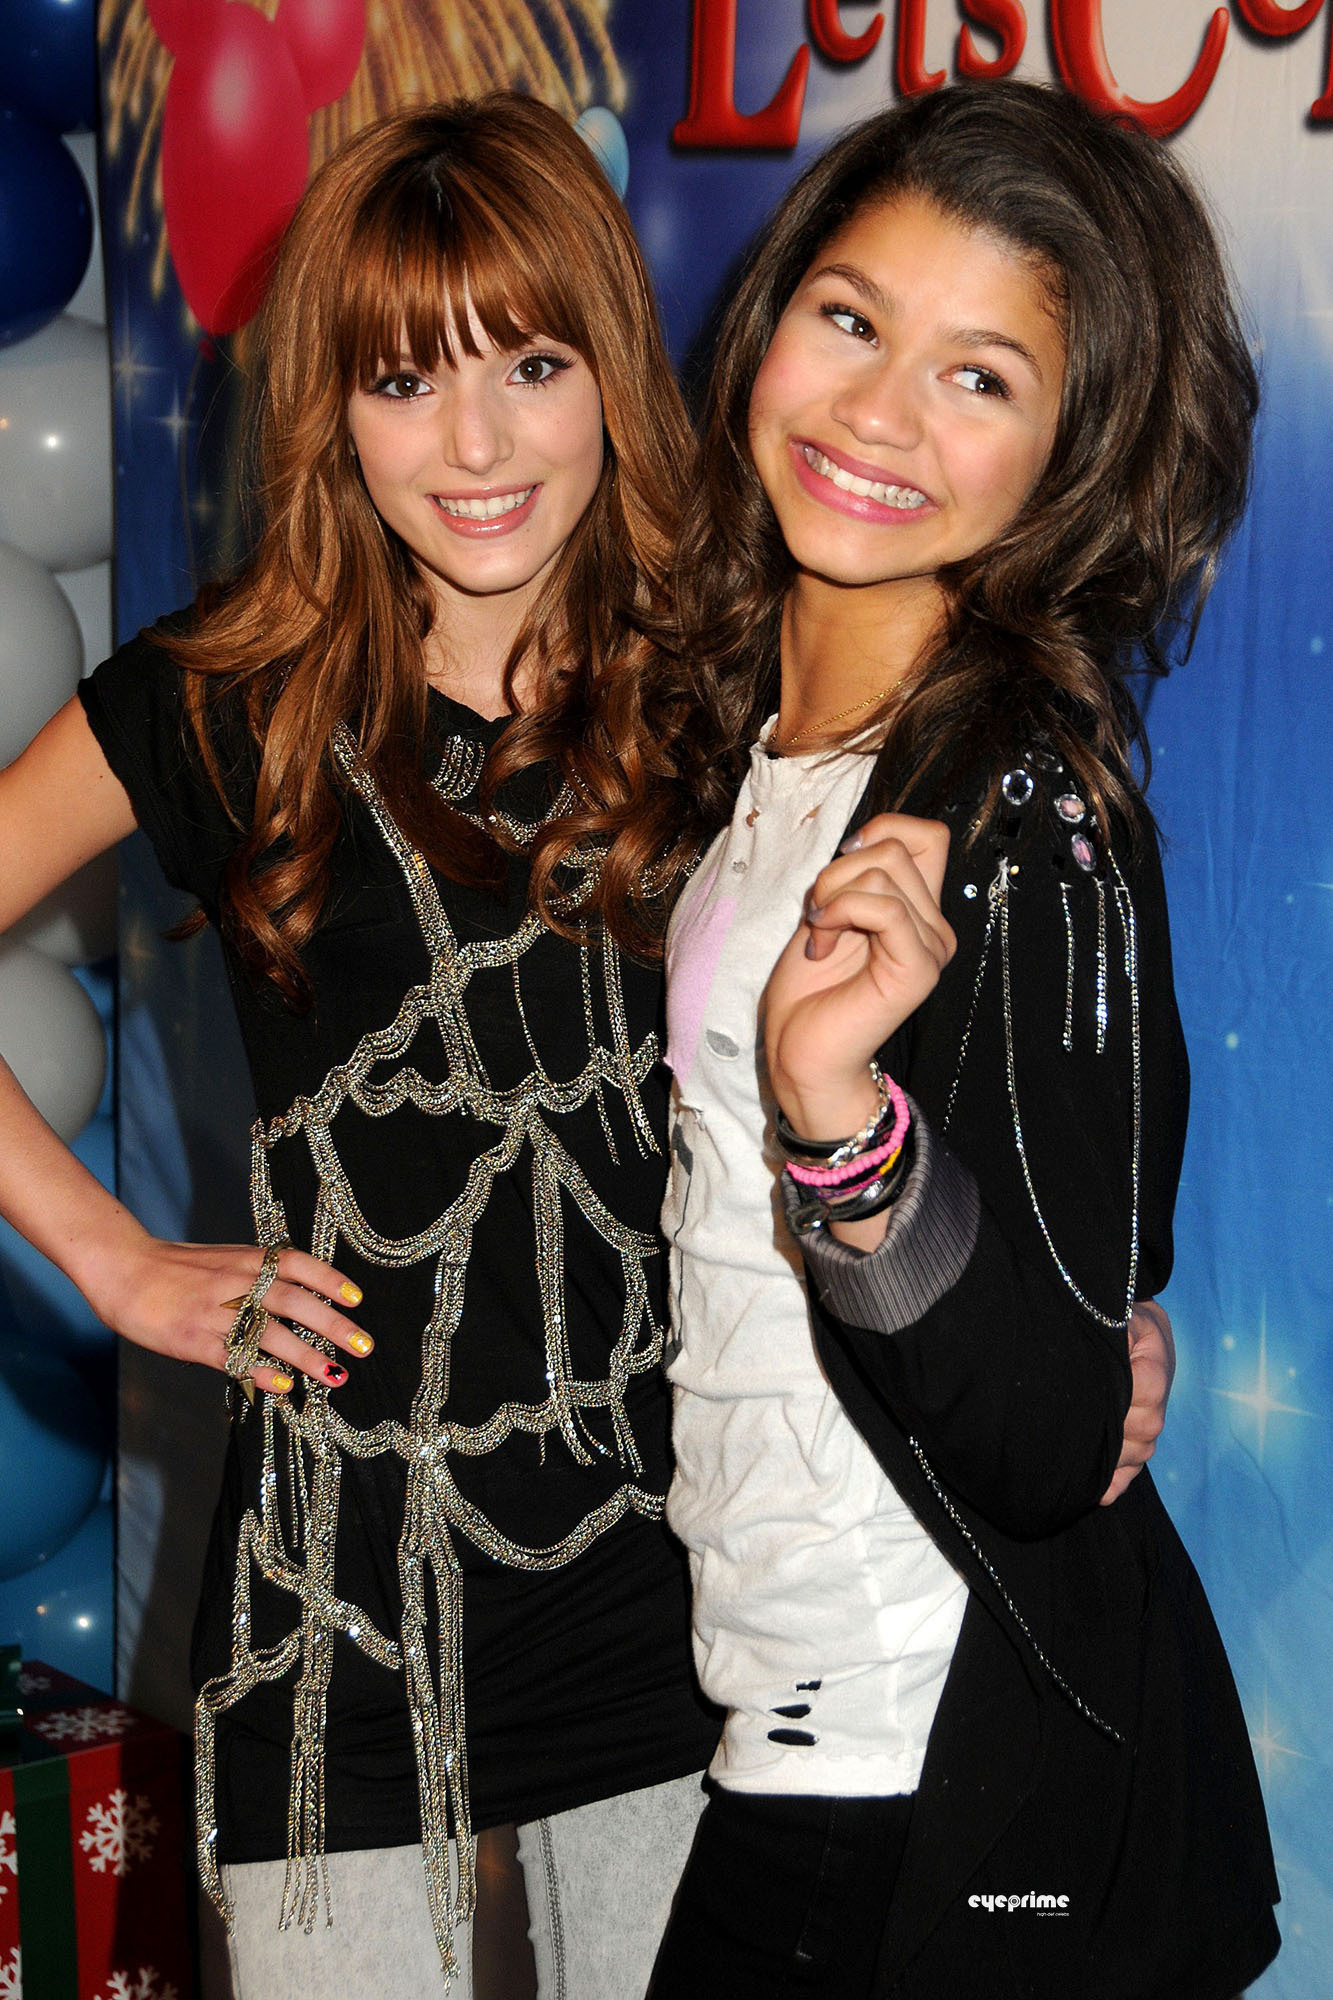 Zendaya and Bella Thorne what select images said